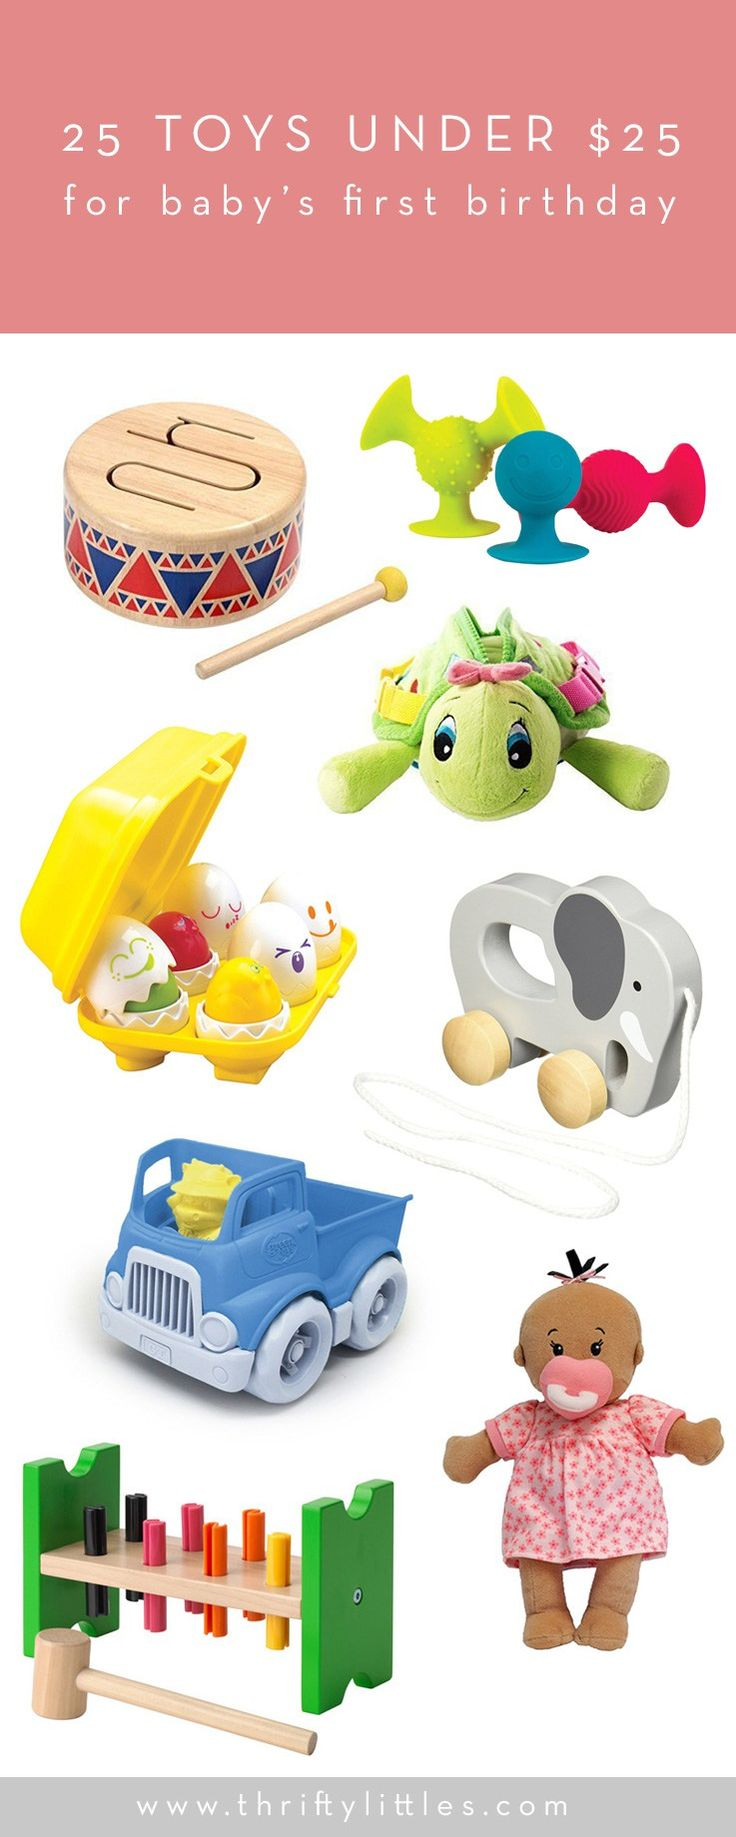 Toys For Under 1 Year : Best thrifty littles images on pinterest babies